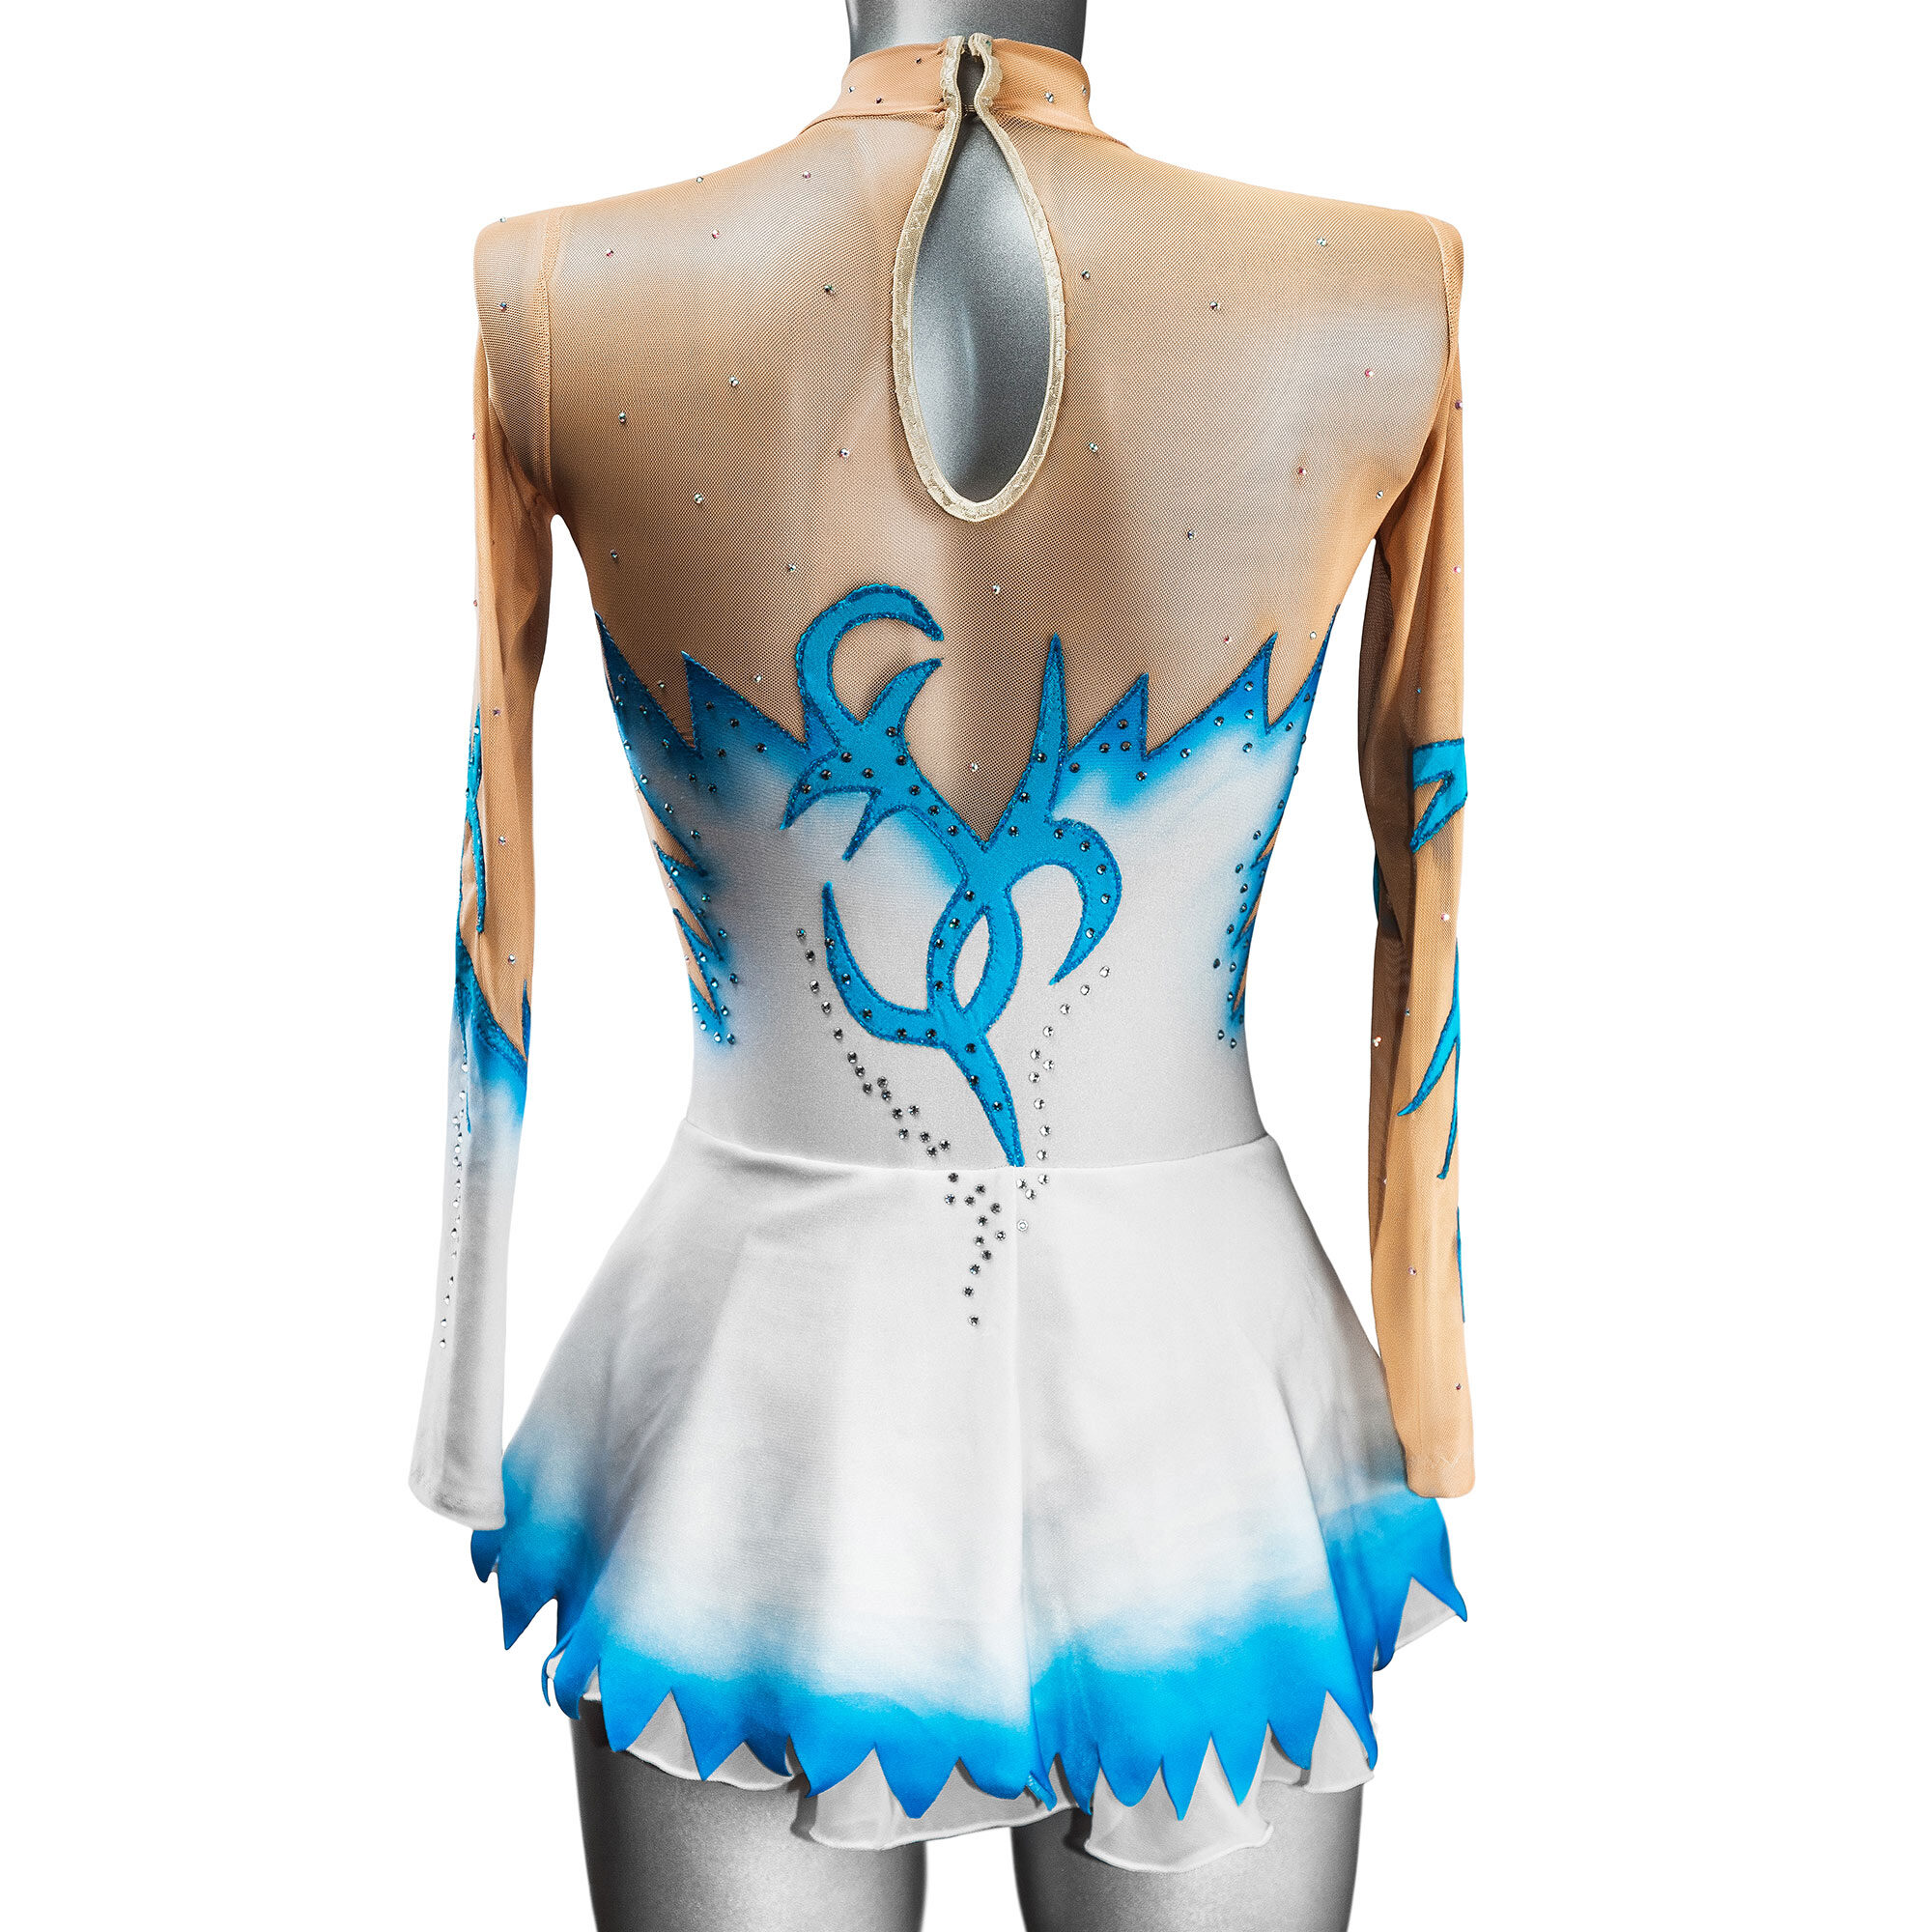 Ice Figure Skating Leotard 129